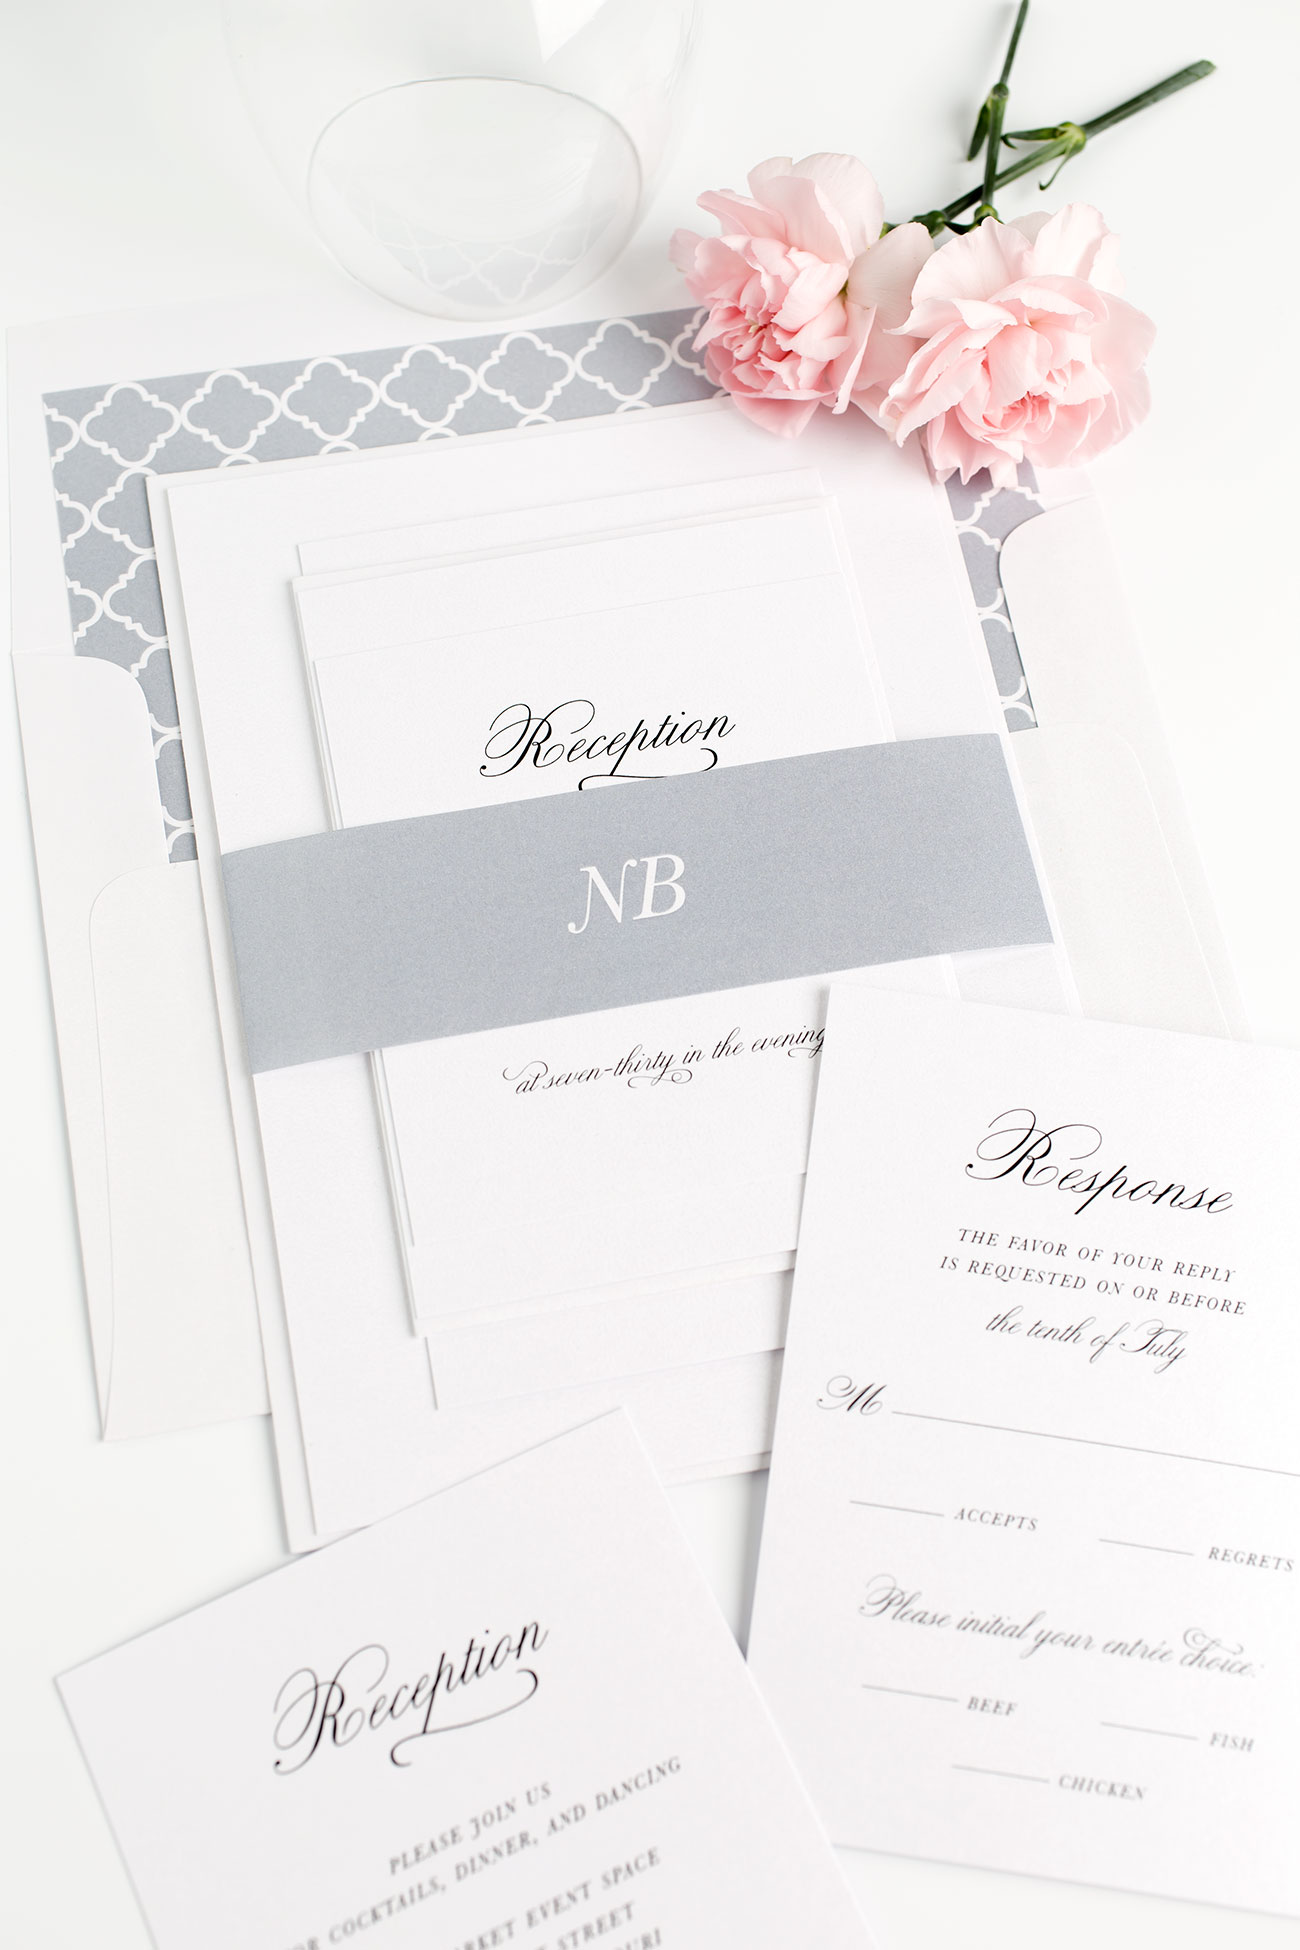 30 Classic Wedding Invitations Ideas Wohh Wedding